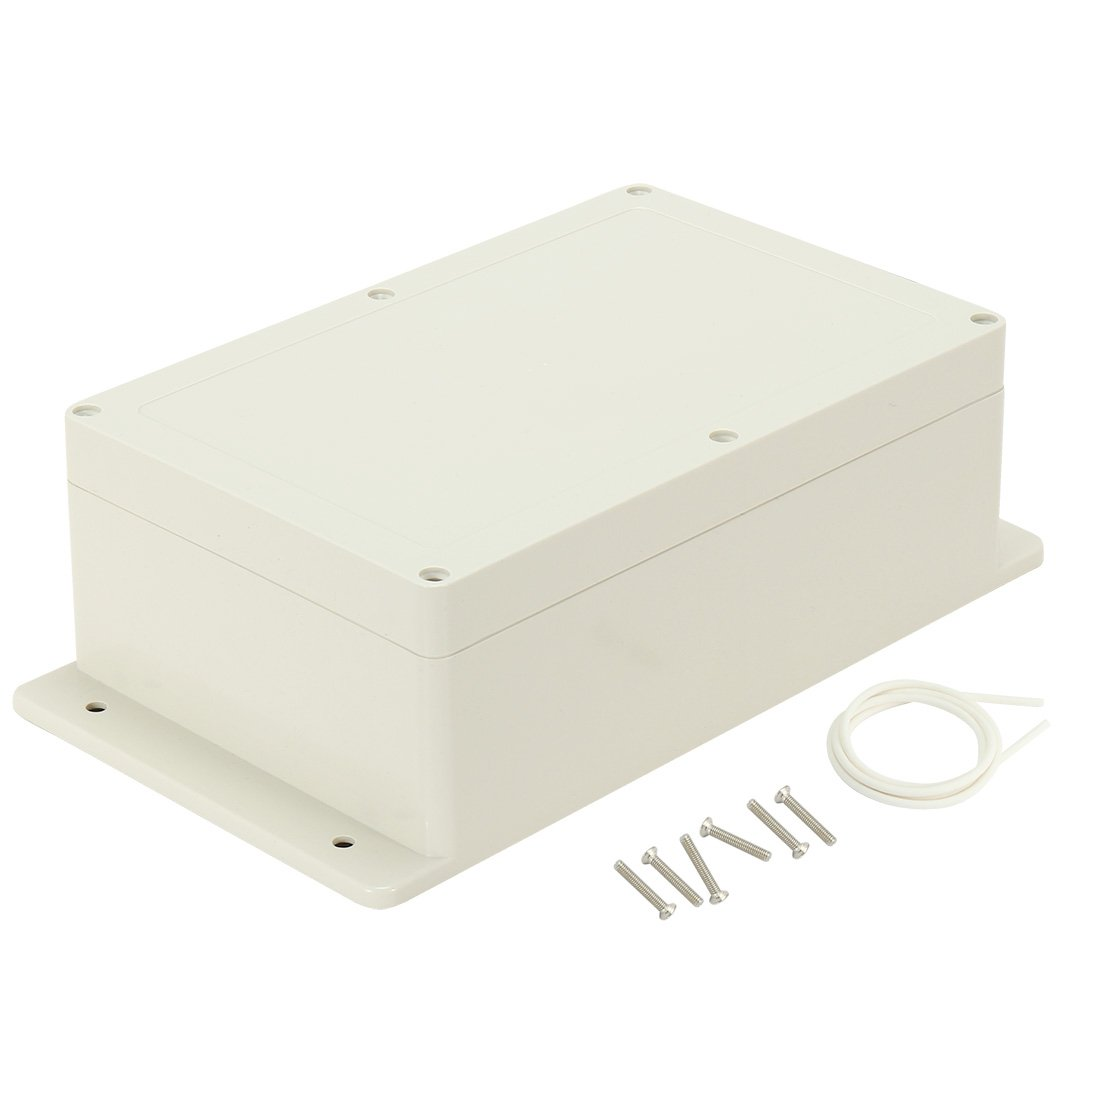 uxcell 9.06''x5.9''x3.43''(230mmx150mmx87mm) ABS Junction Box Universal Electric Project Enclosure w Fixed Ear